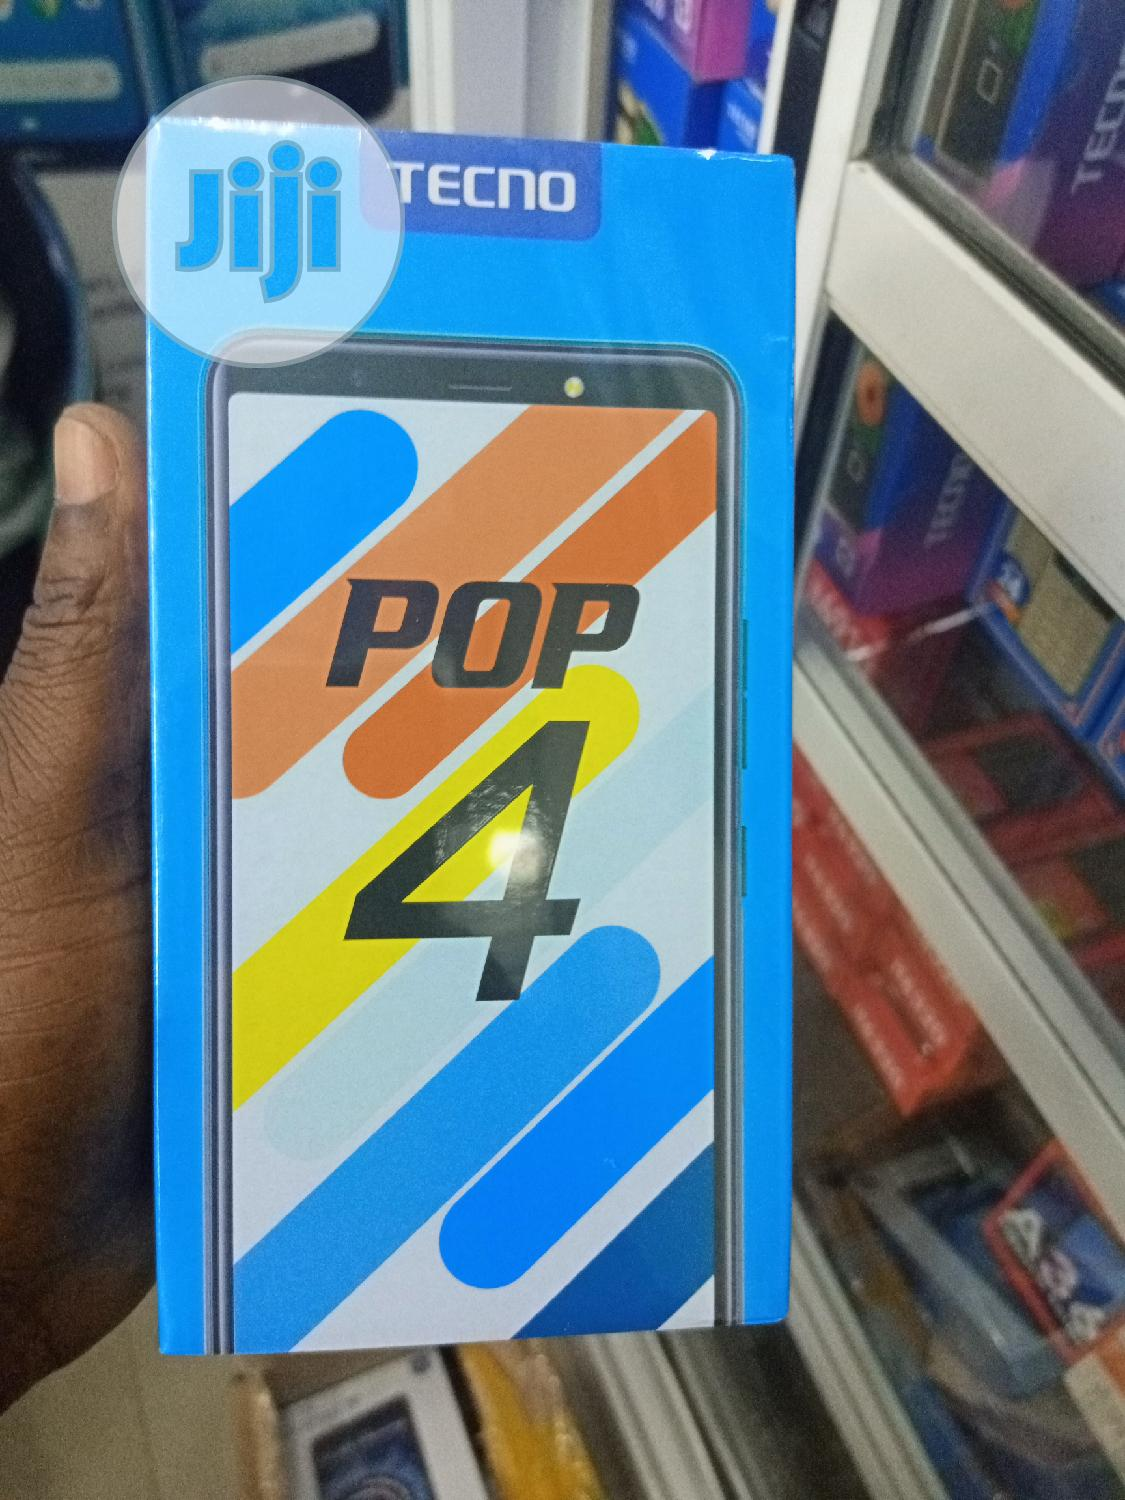 New Tecno Pop 4 32 GB